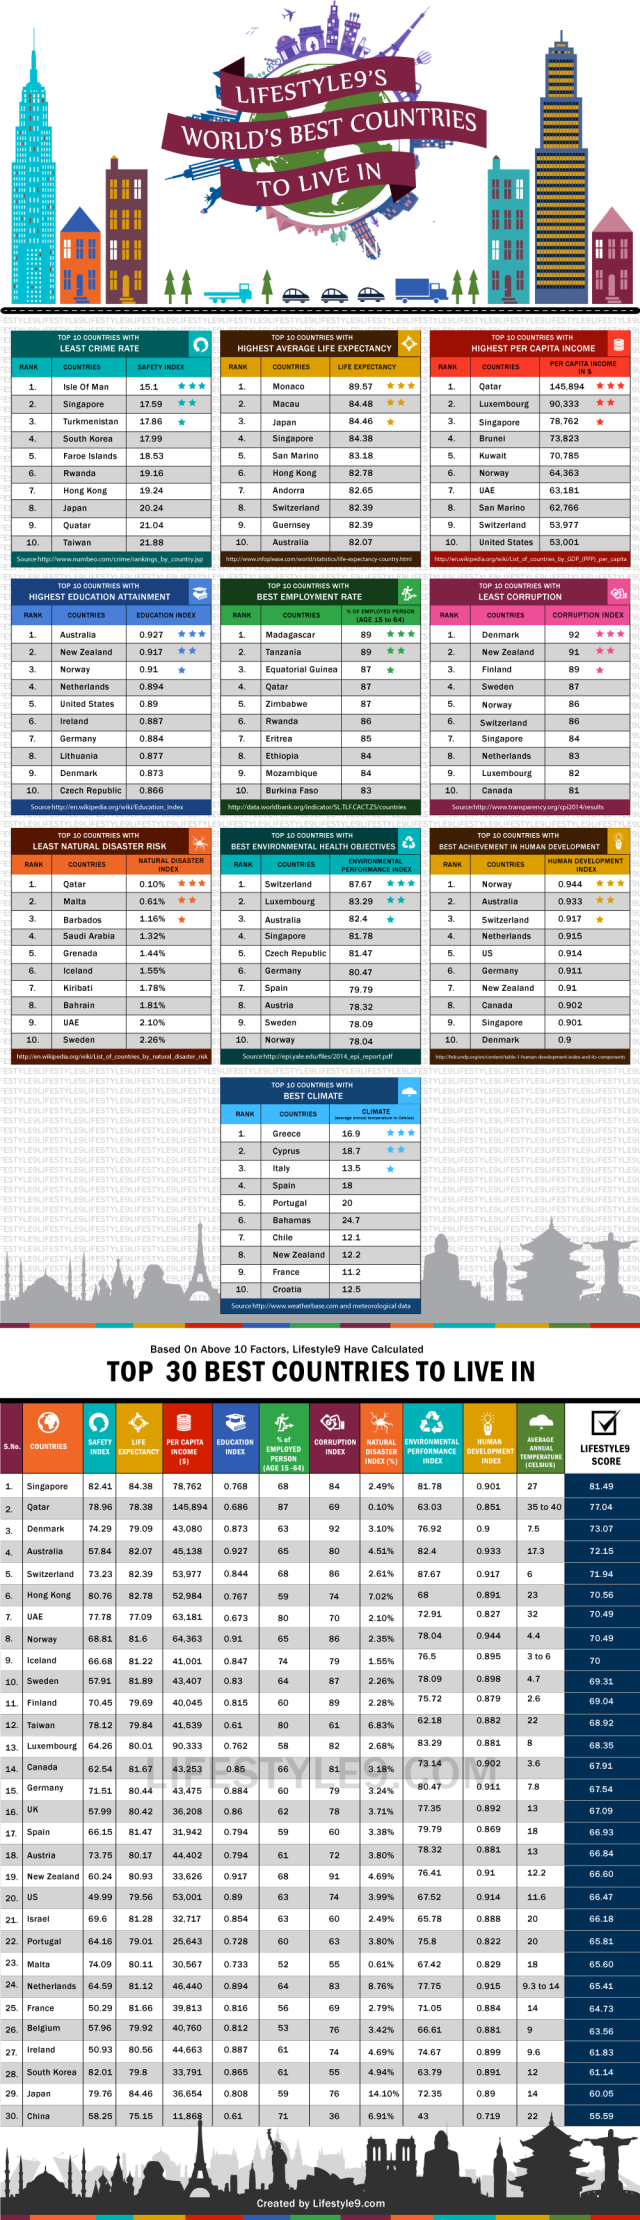 30 Best Countries In the World? http://lifestyle9.org/worlds-best-country-to-live-in-2013/4/